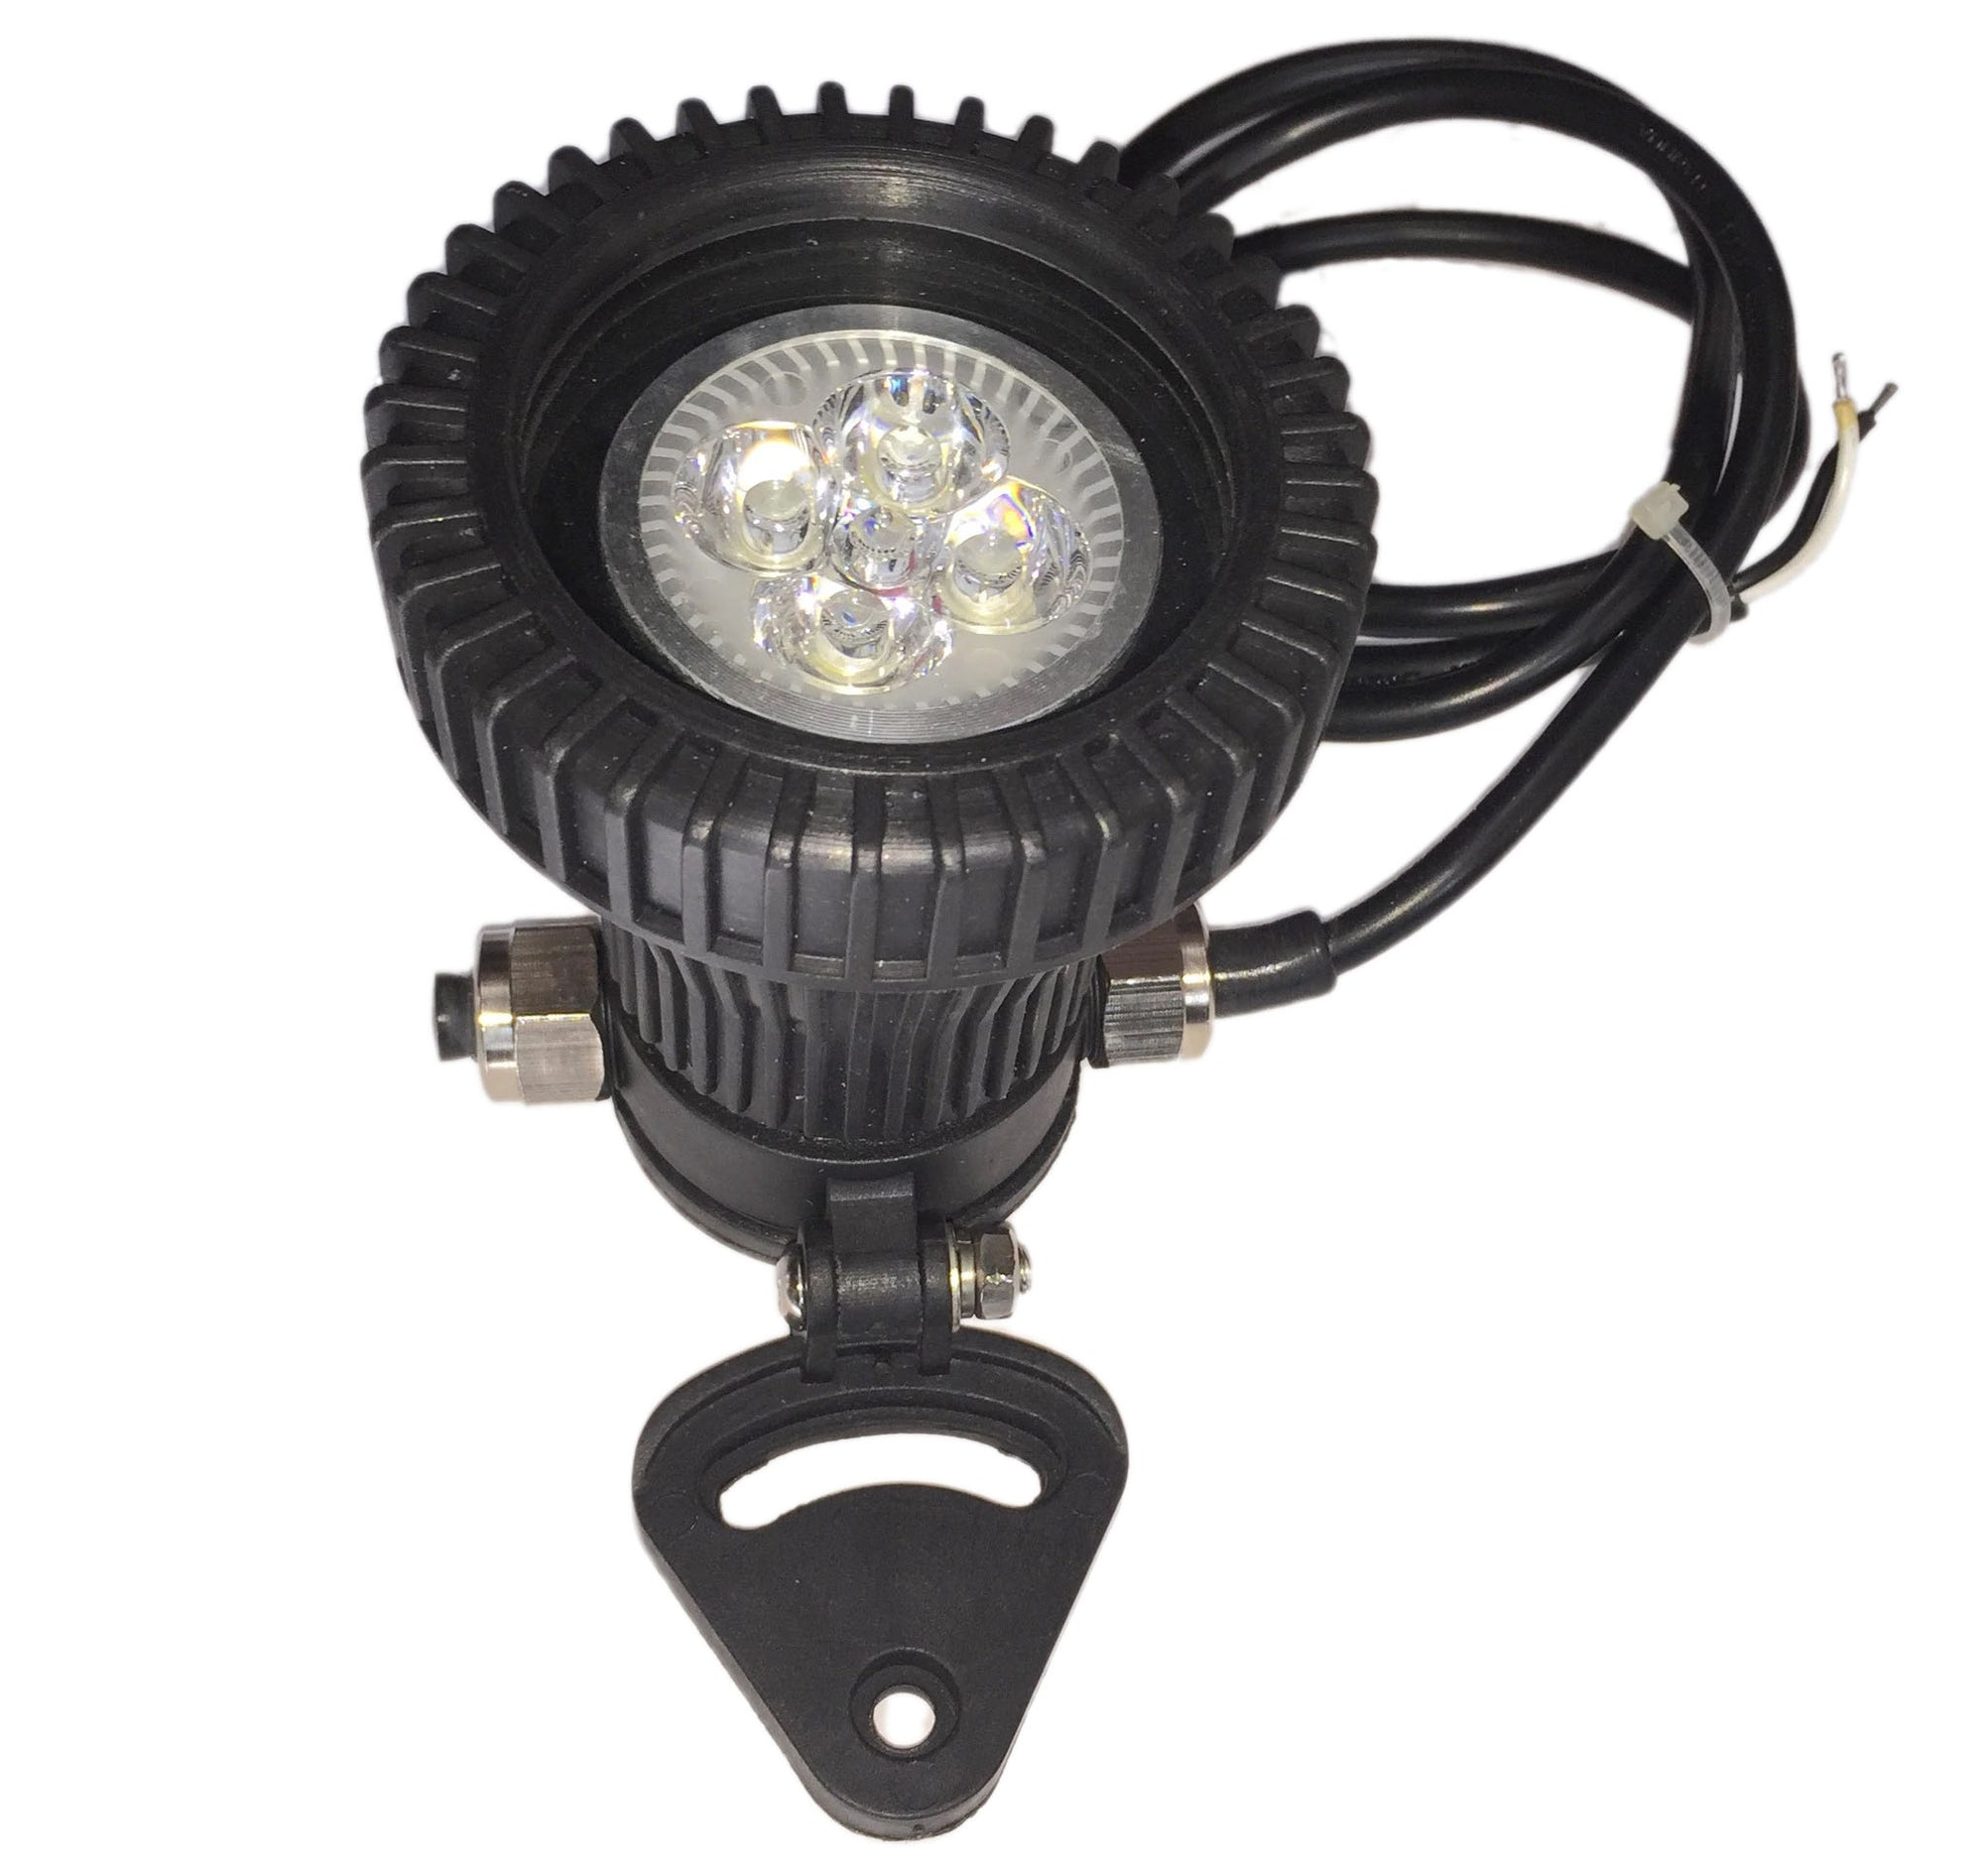 Underwater Light - 4 Watt LED